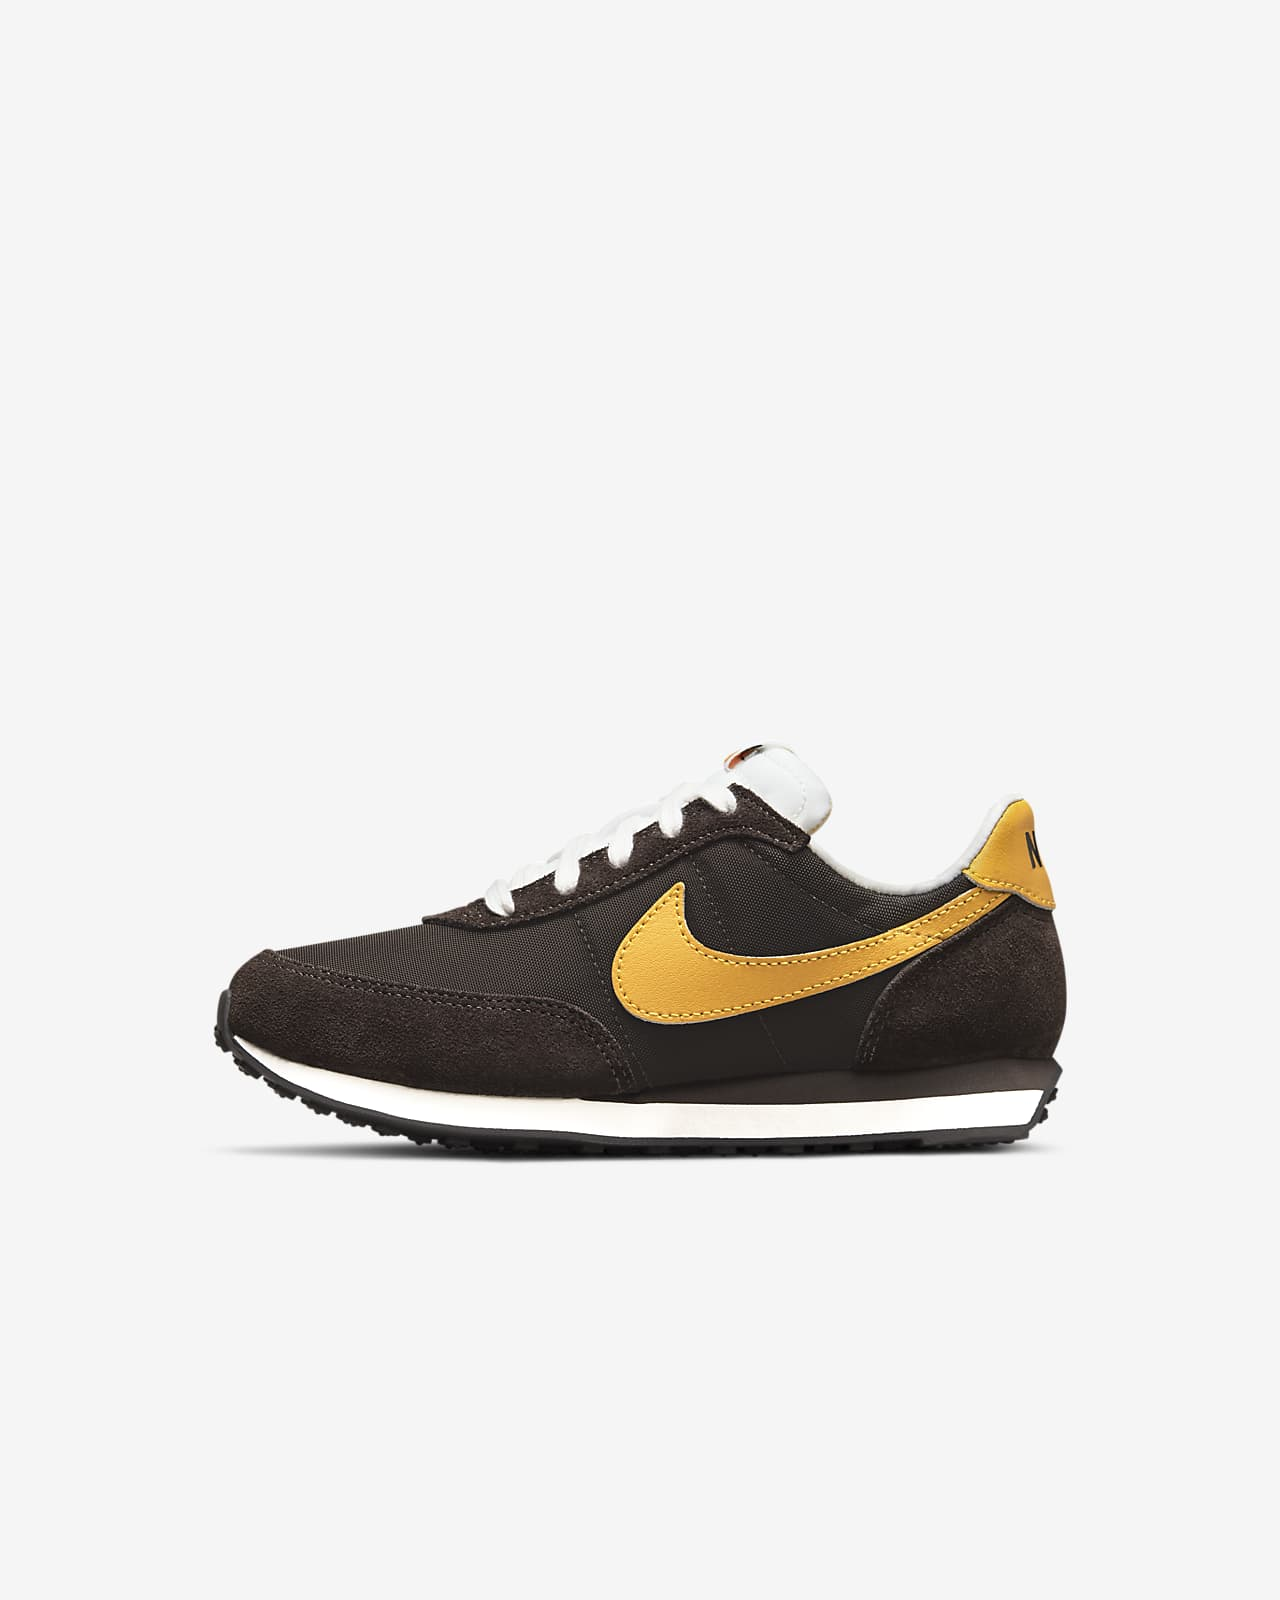 Nike Waffle Trainer 2 SP Little Kids' Shoes